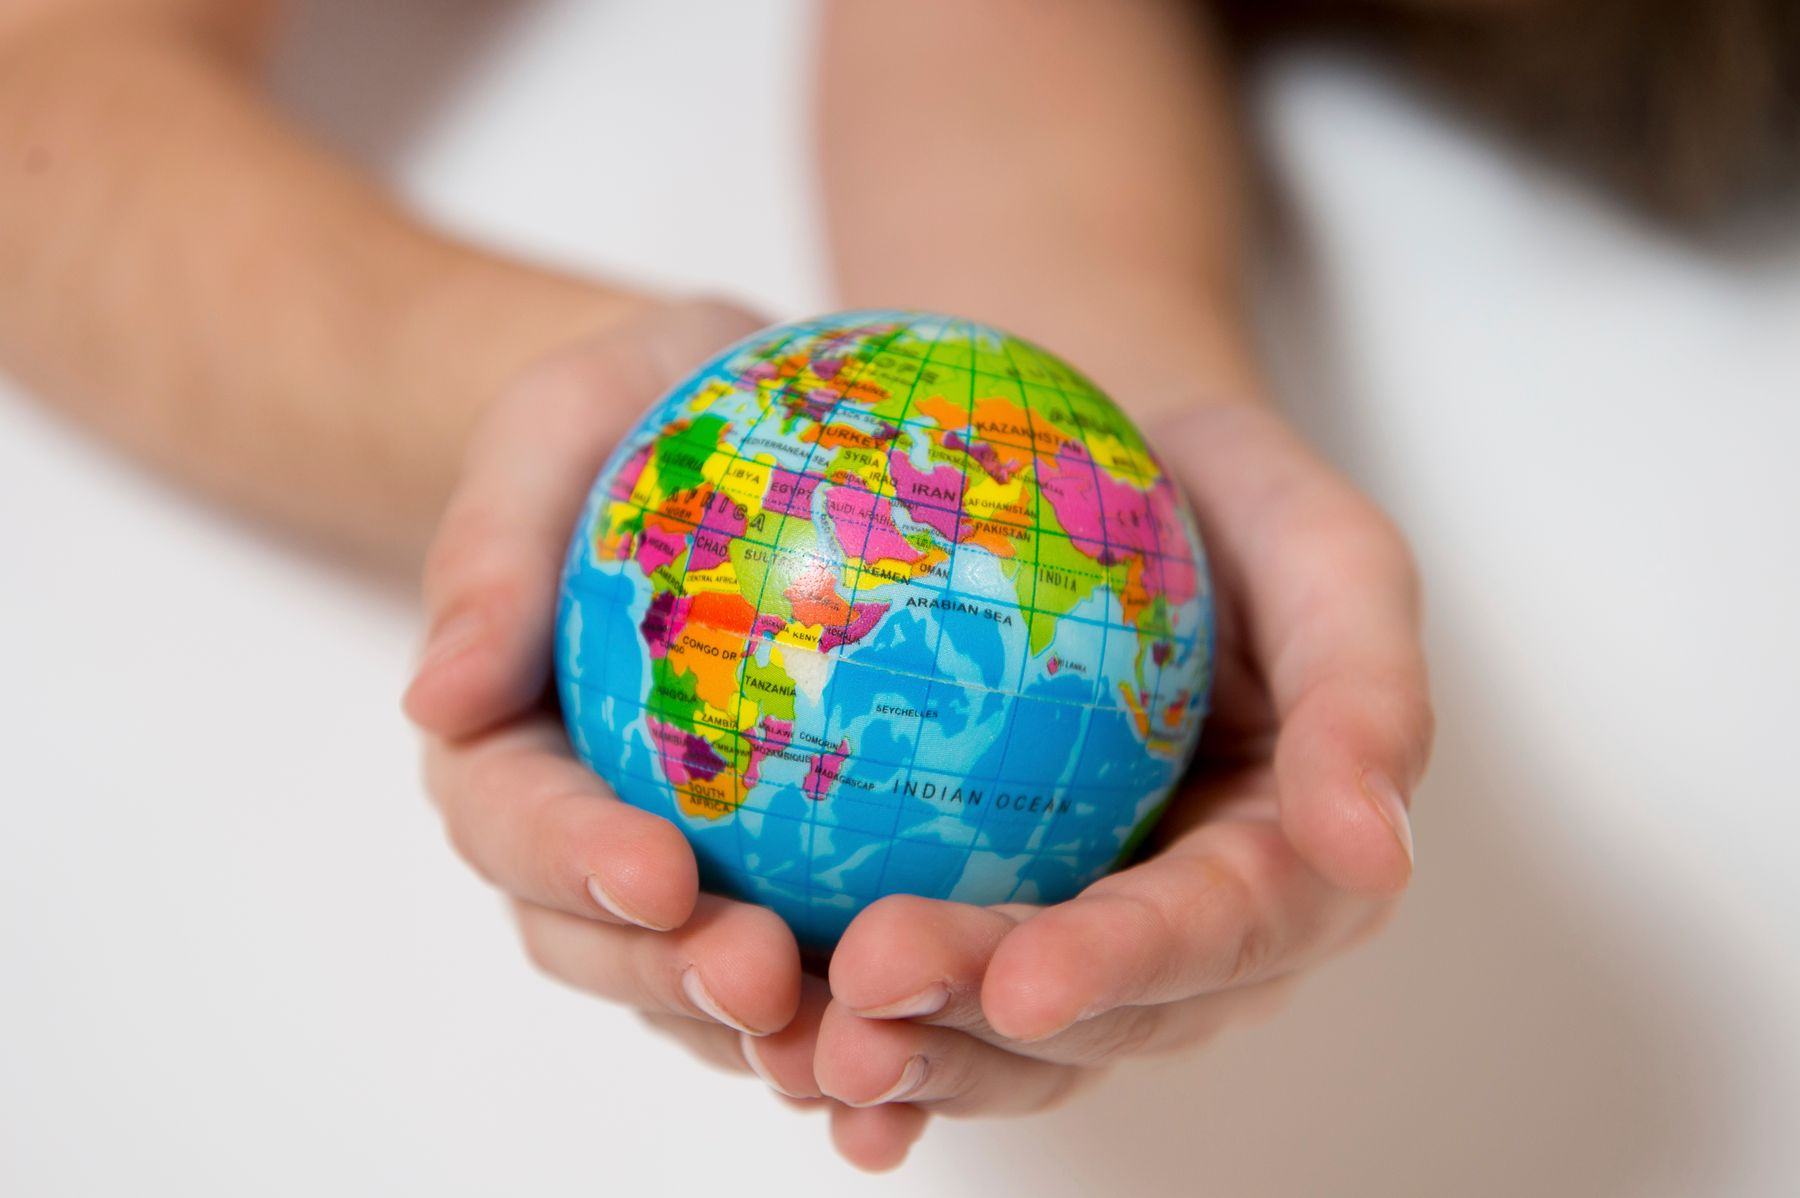 Person holding small globe in hands